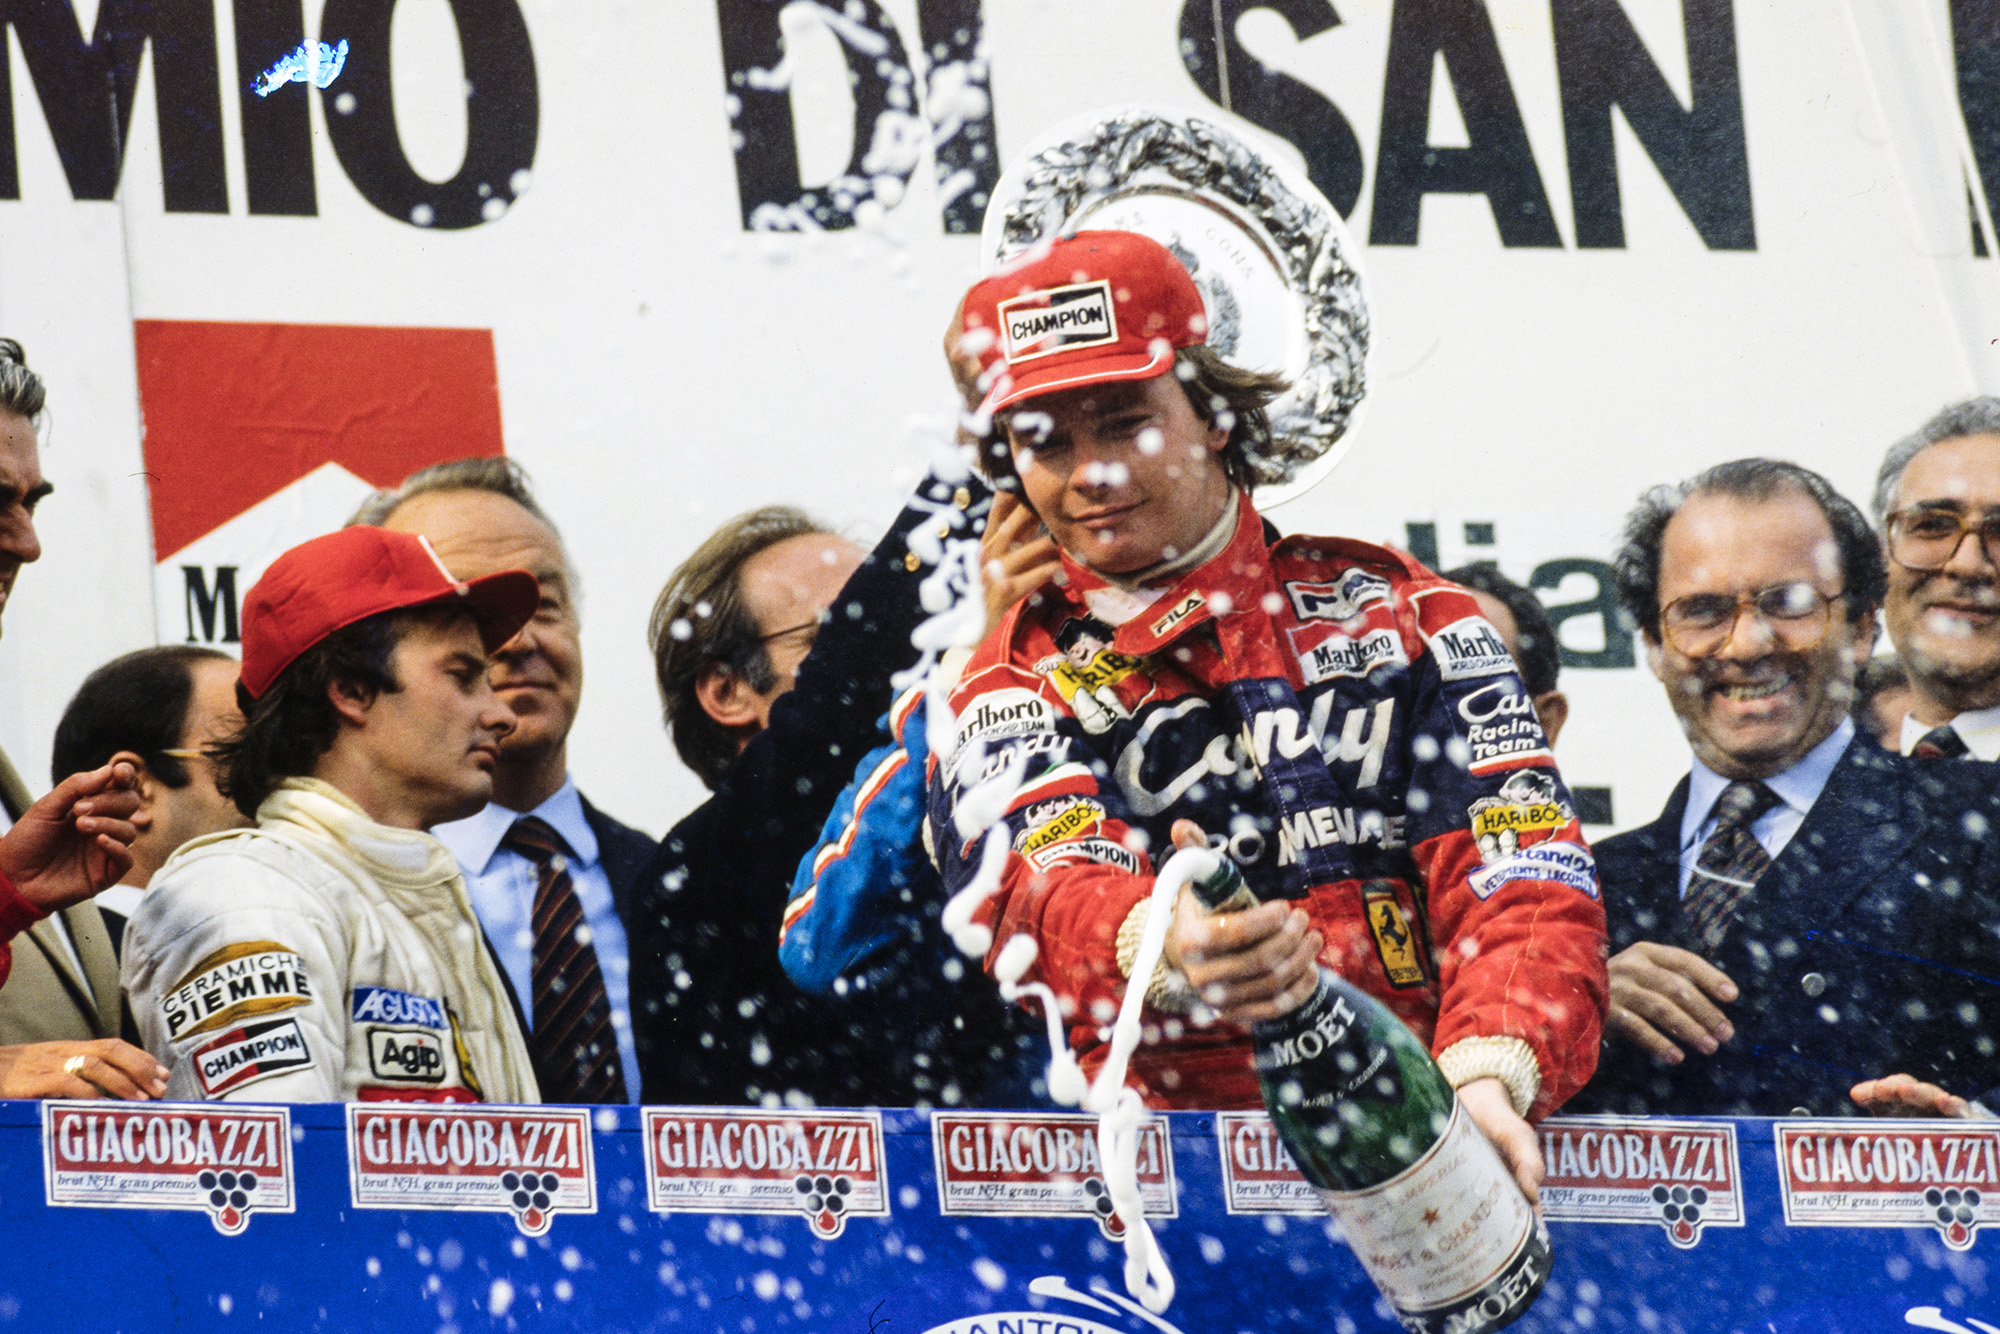 Didier Pironi sprays champagne at Imola in 1982 as Gilles Villeneuve looks away